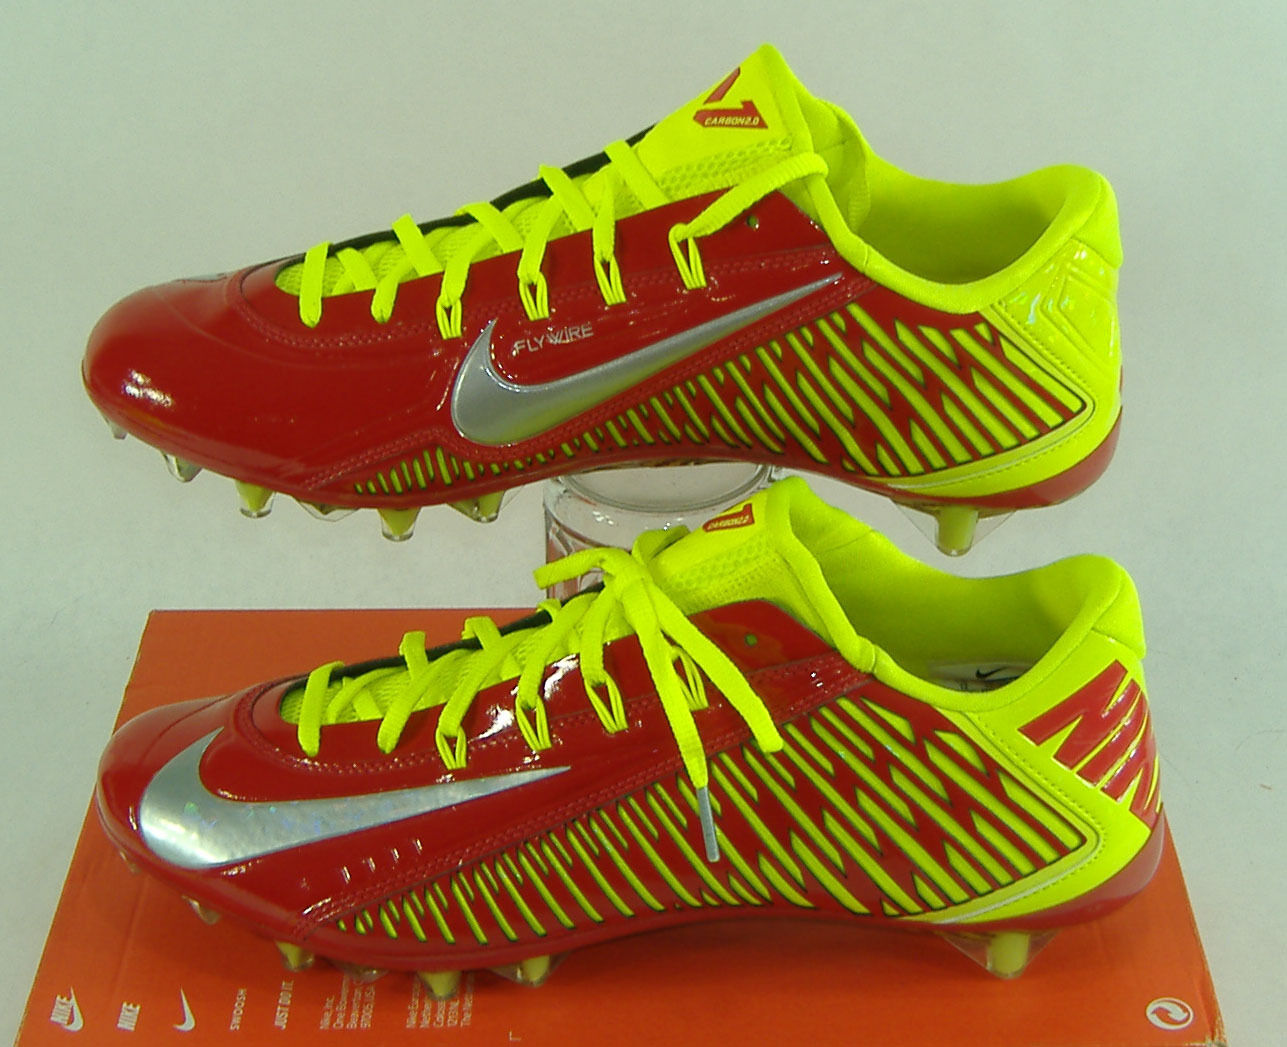 New Mens 10 NIKE Vapor Carbon ELT 2014 TD Red Volt Cleats Shoes    631425-607